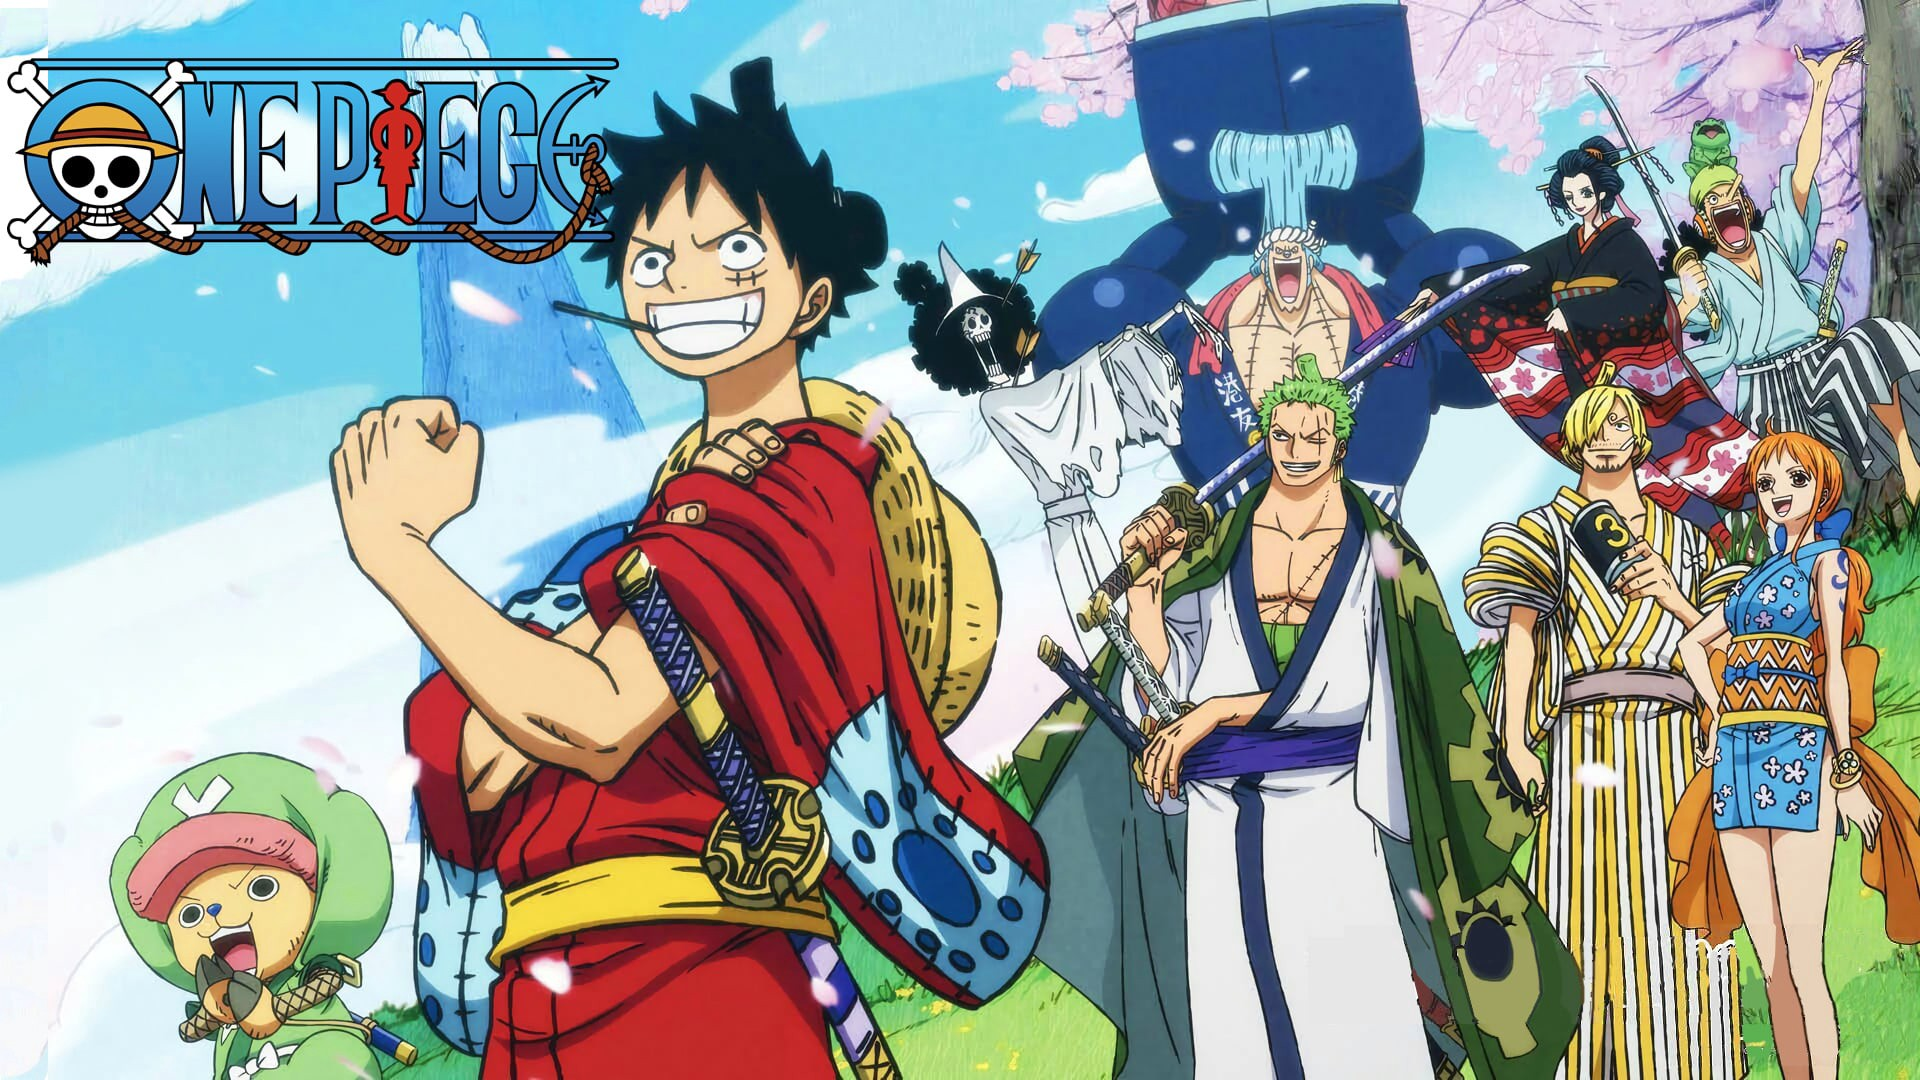 ][One Piece Episode 962: Release Date, Spoilers and Watch Online